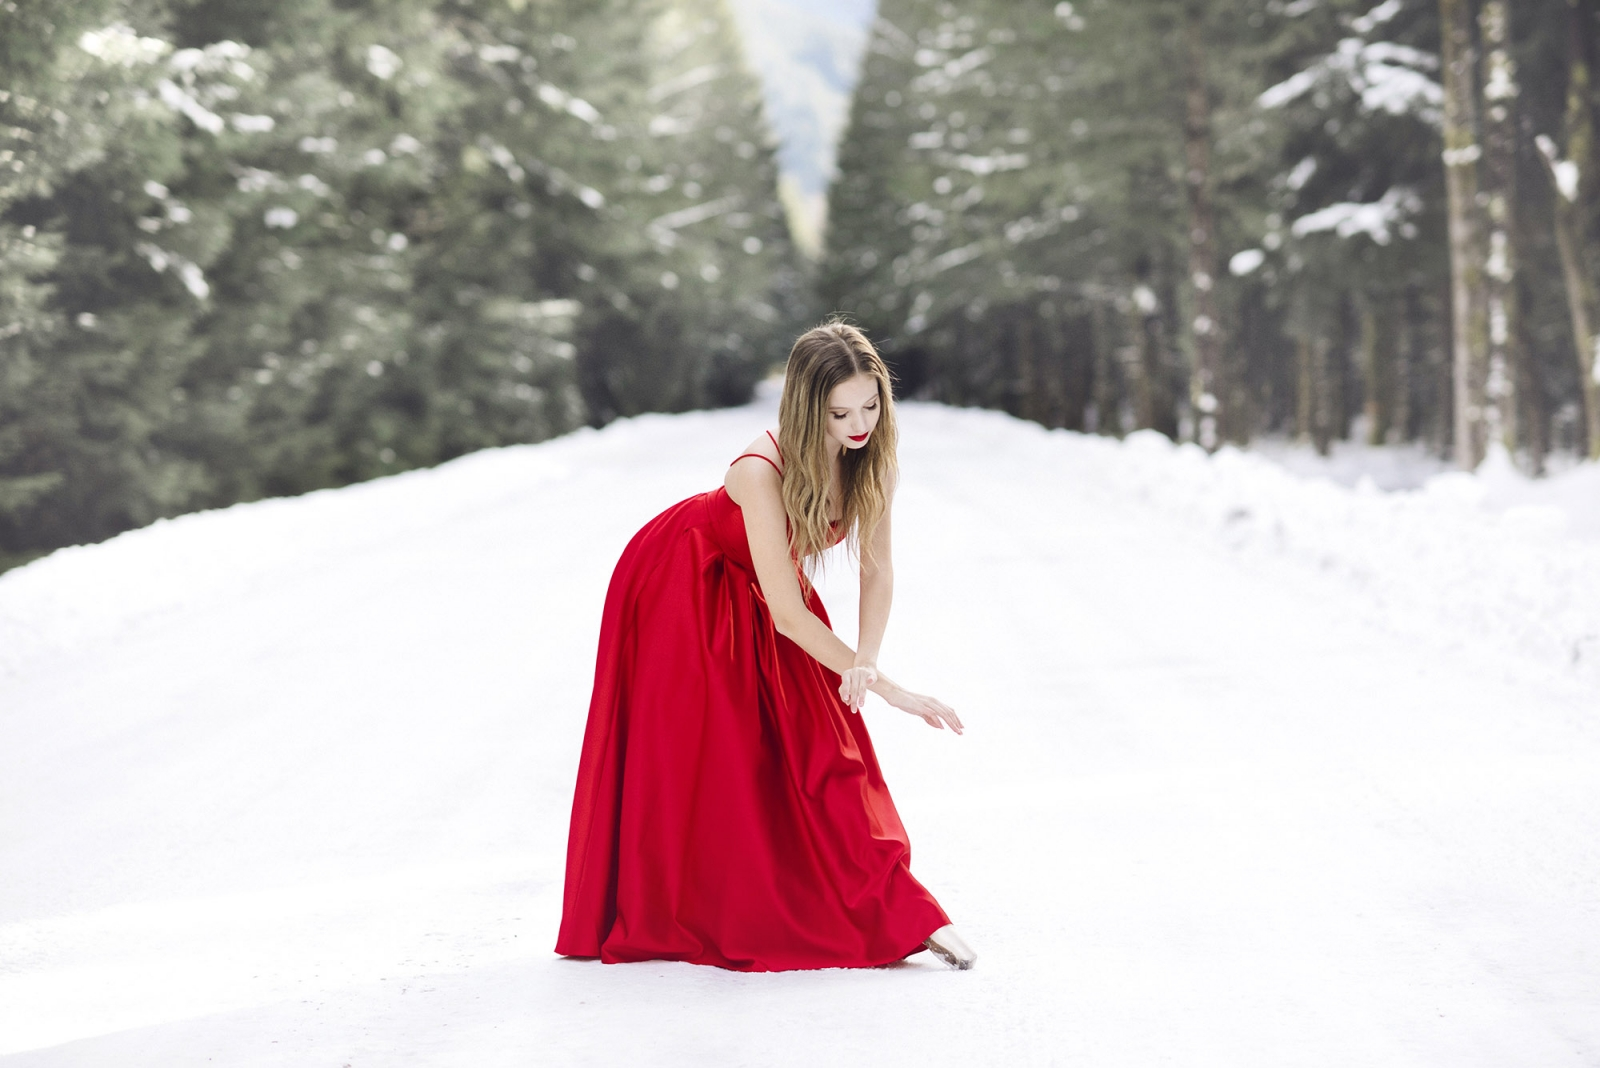 Ballet pictures in the snow